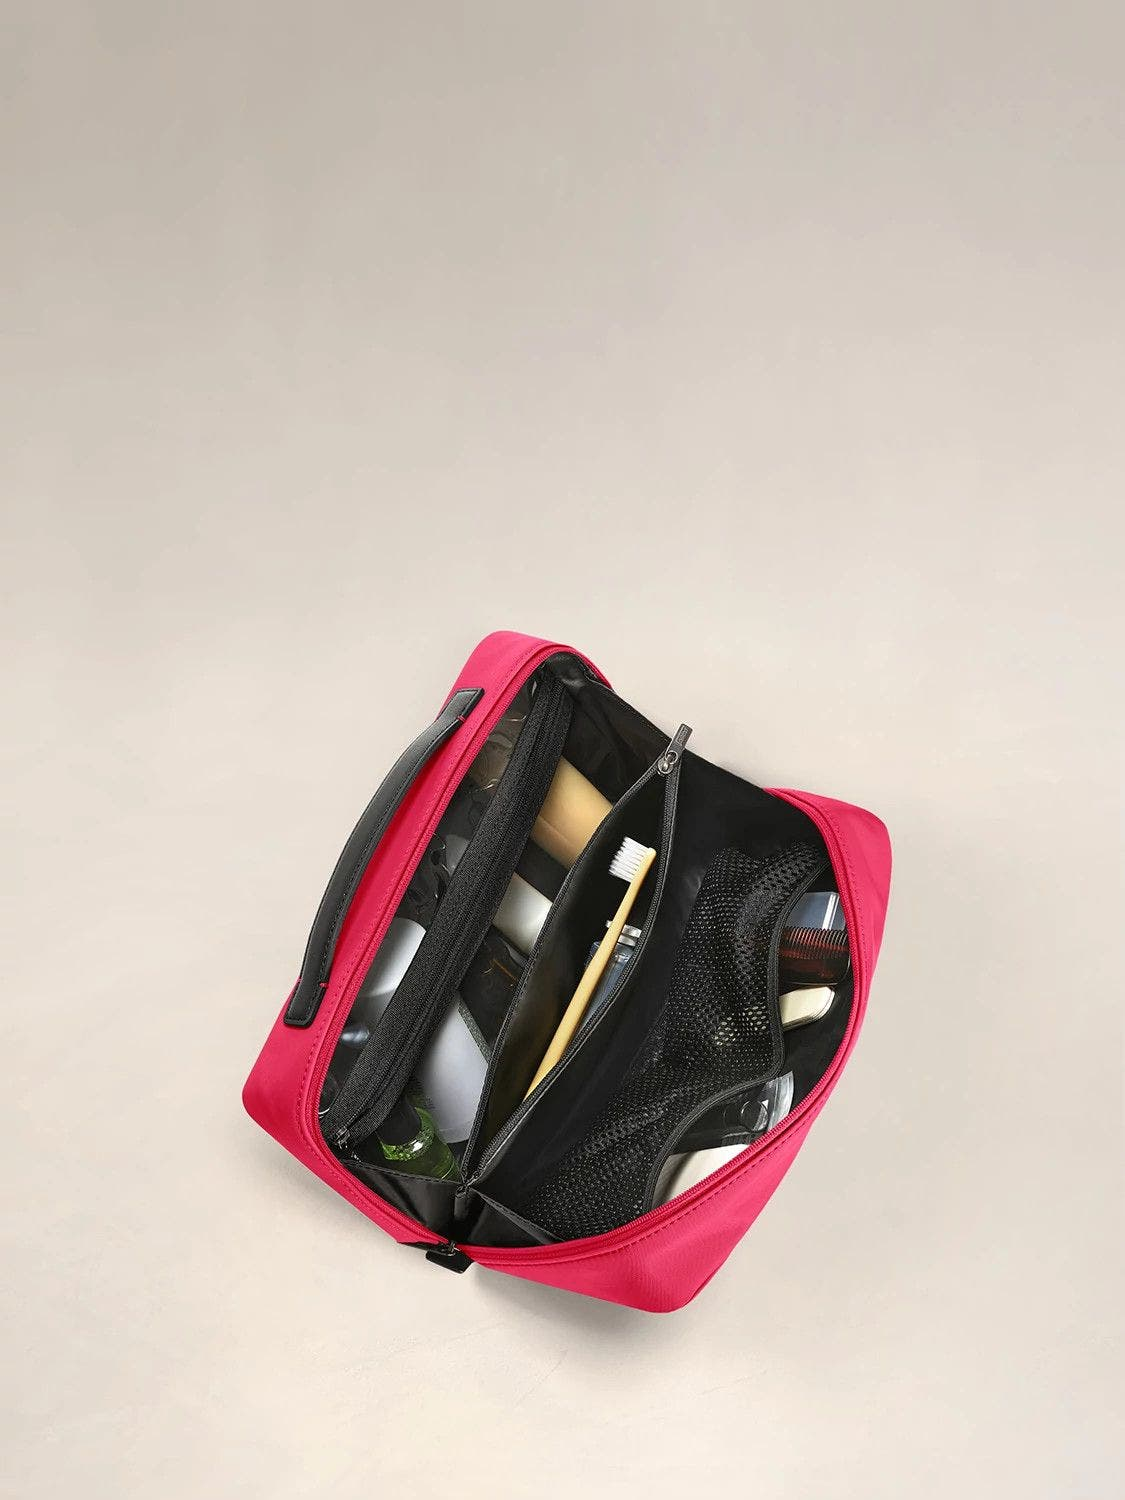 Inside view of a travel toiletry kit in electric magenta with black interior pockets full of travel toiletries.